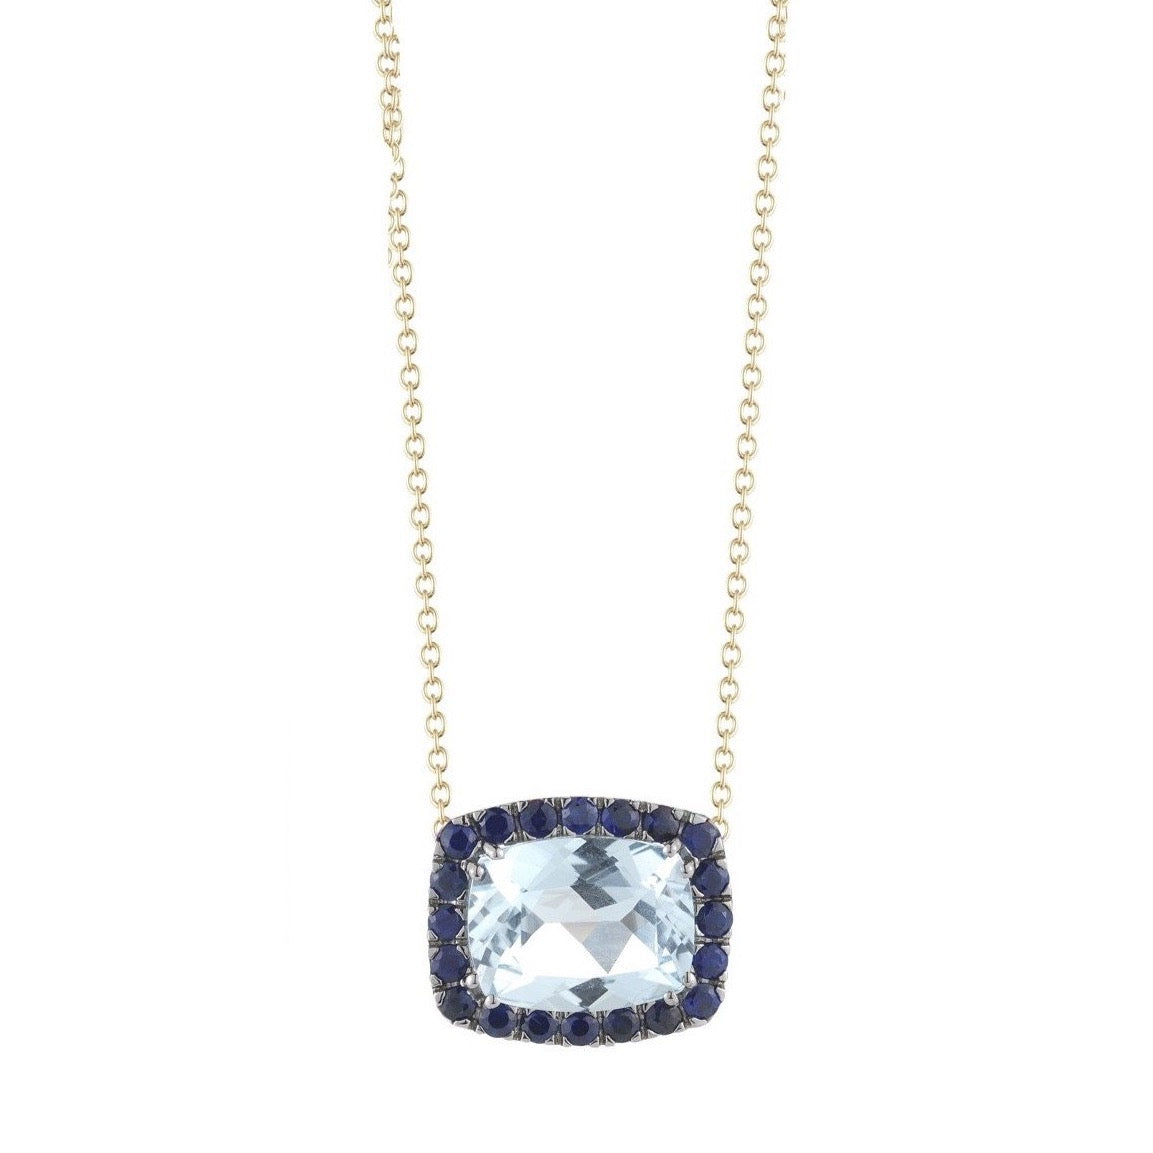 "A & Furst ""Dynamite"" Pendant Necklace with Blue Topaz and Blue Sapphires, 18kYellow Gold and Black Rhodium."